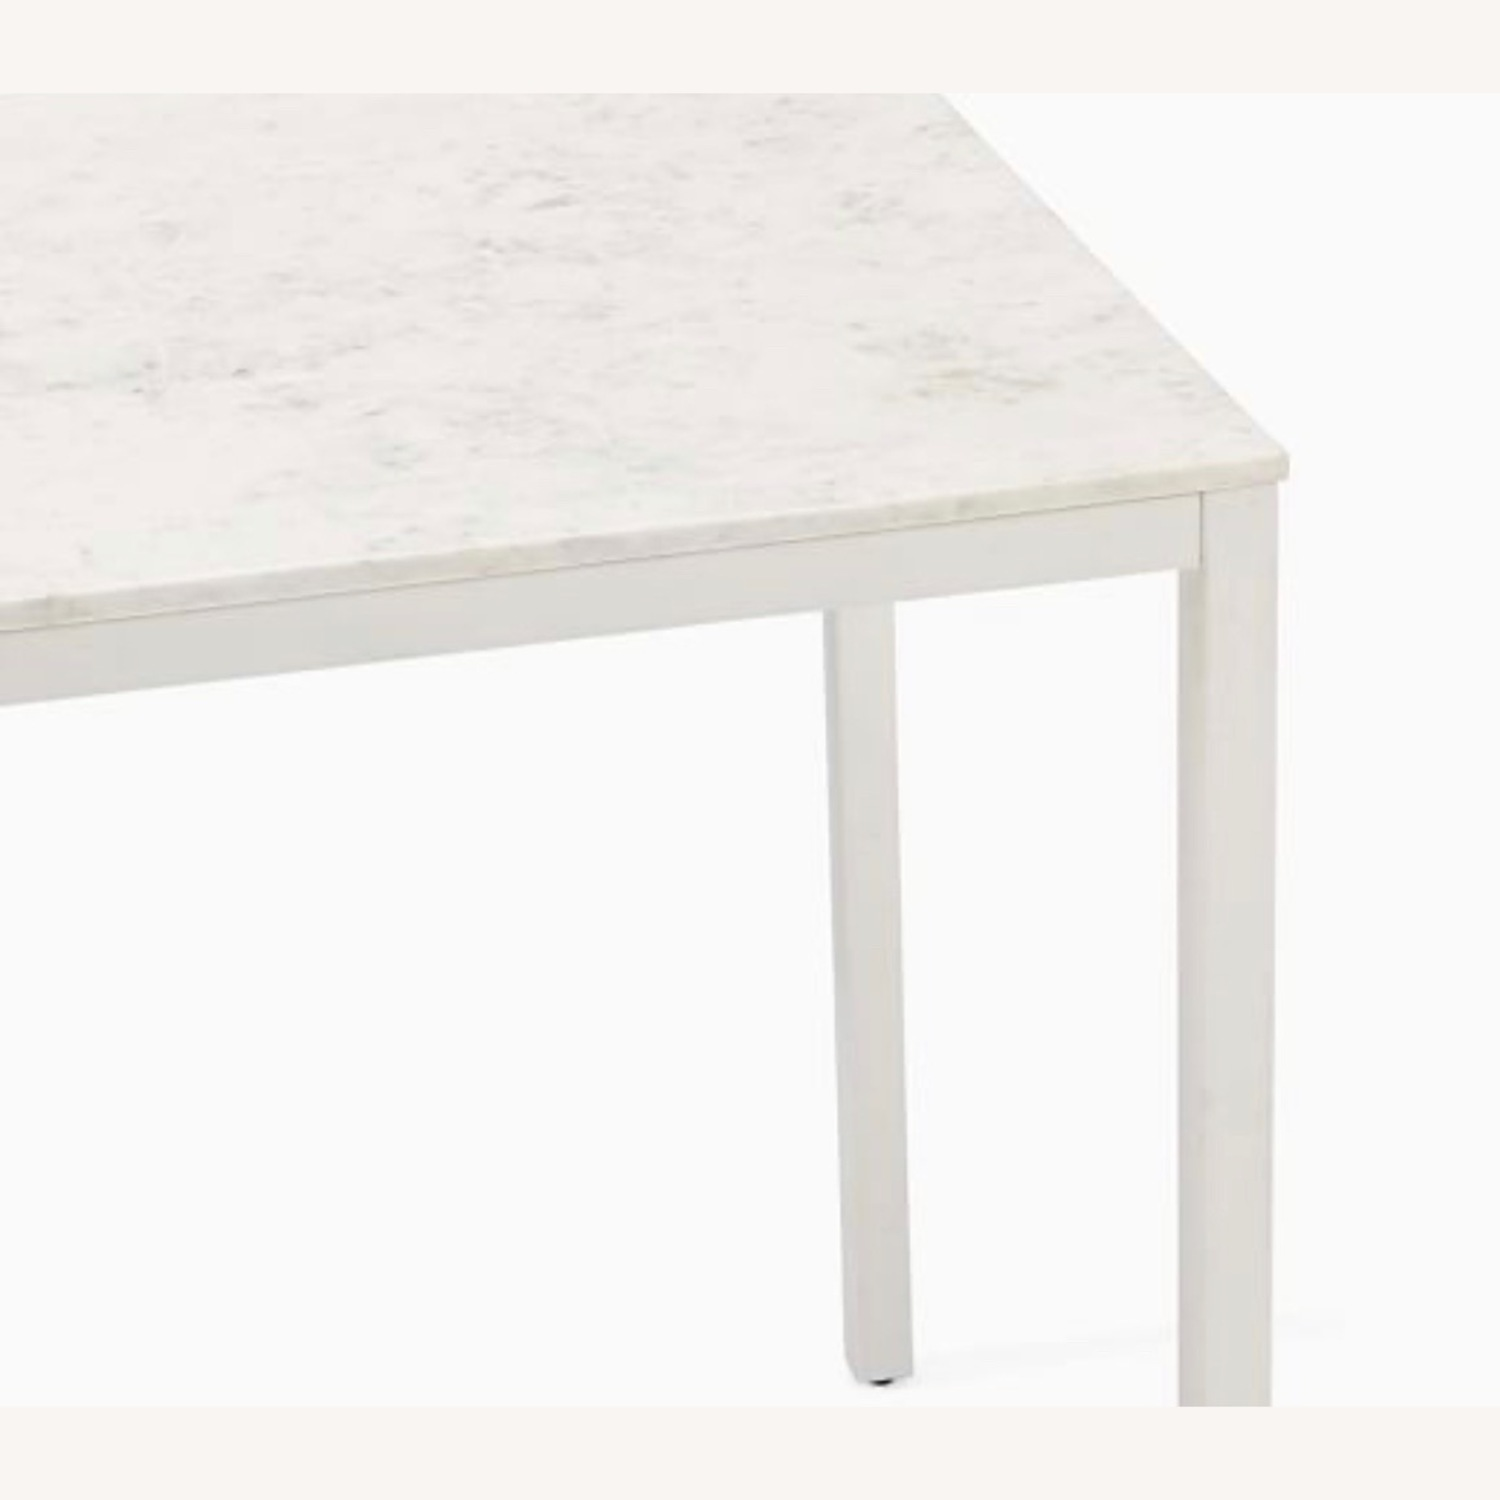 West Elm Frame Counter Table White Marble - image-2